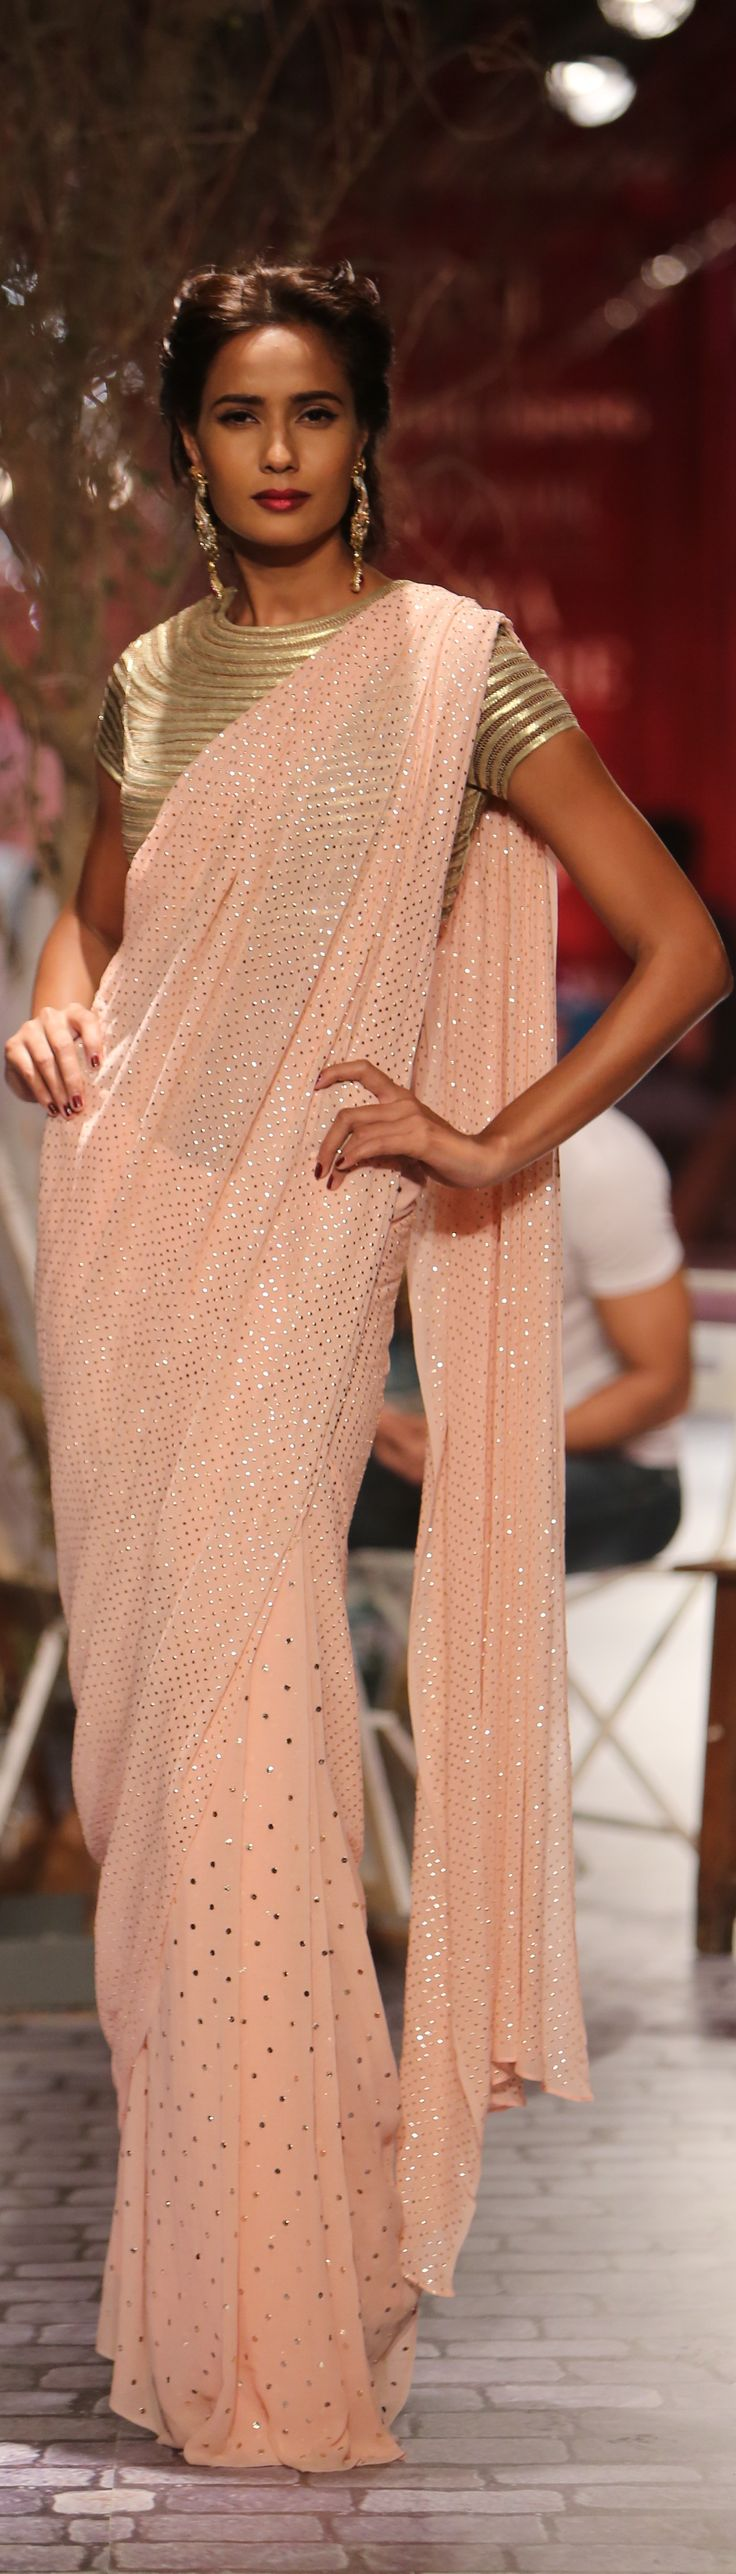 Monisha Jaising Collection at India Couture Week - original pin by @webjournal